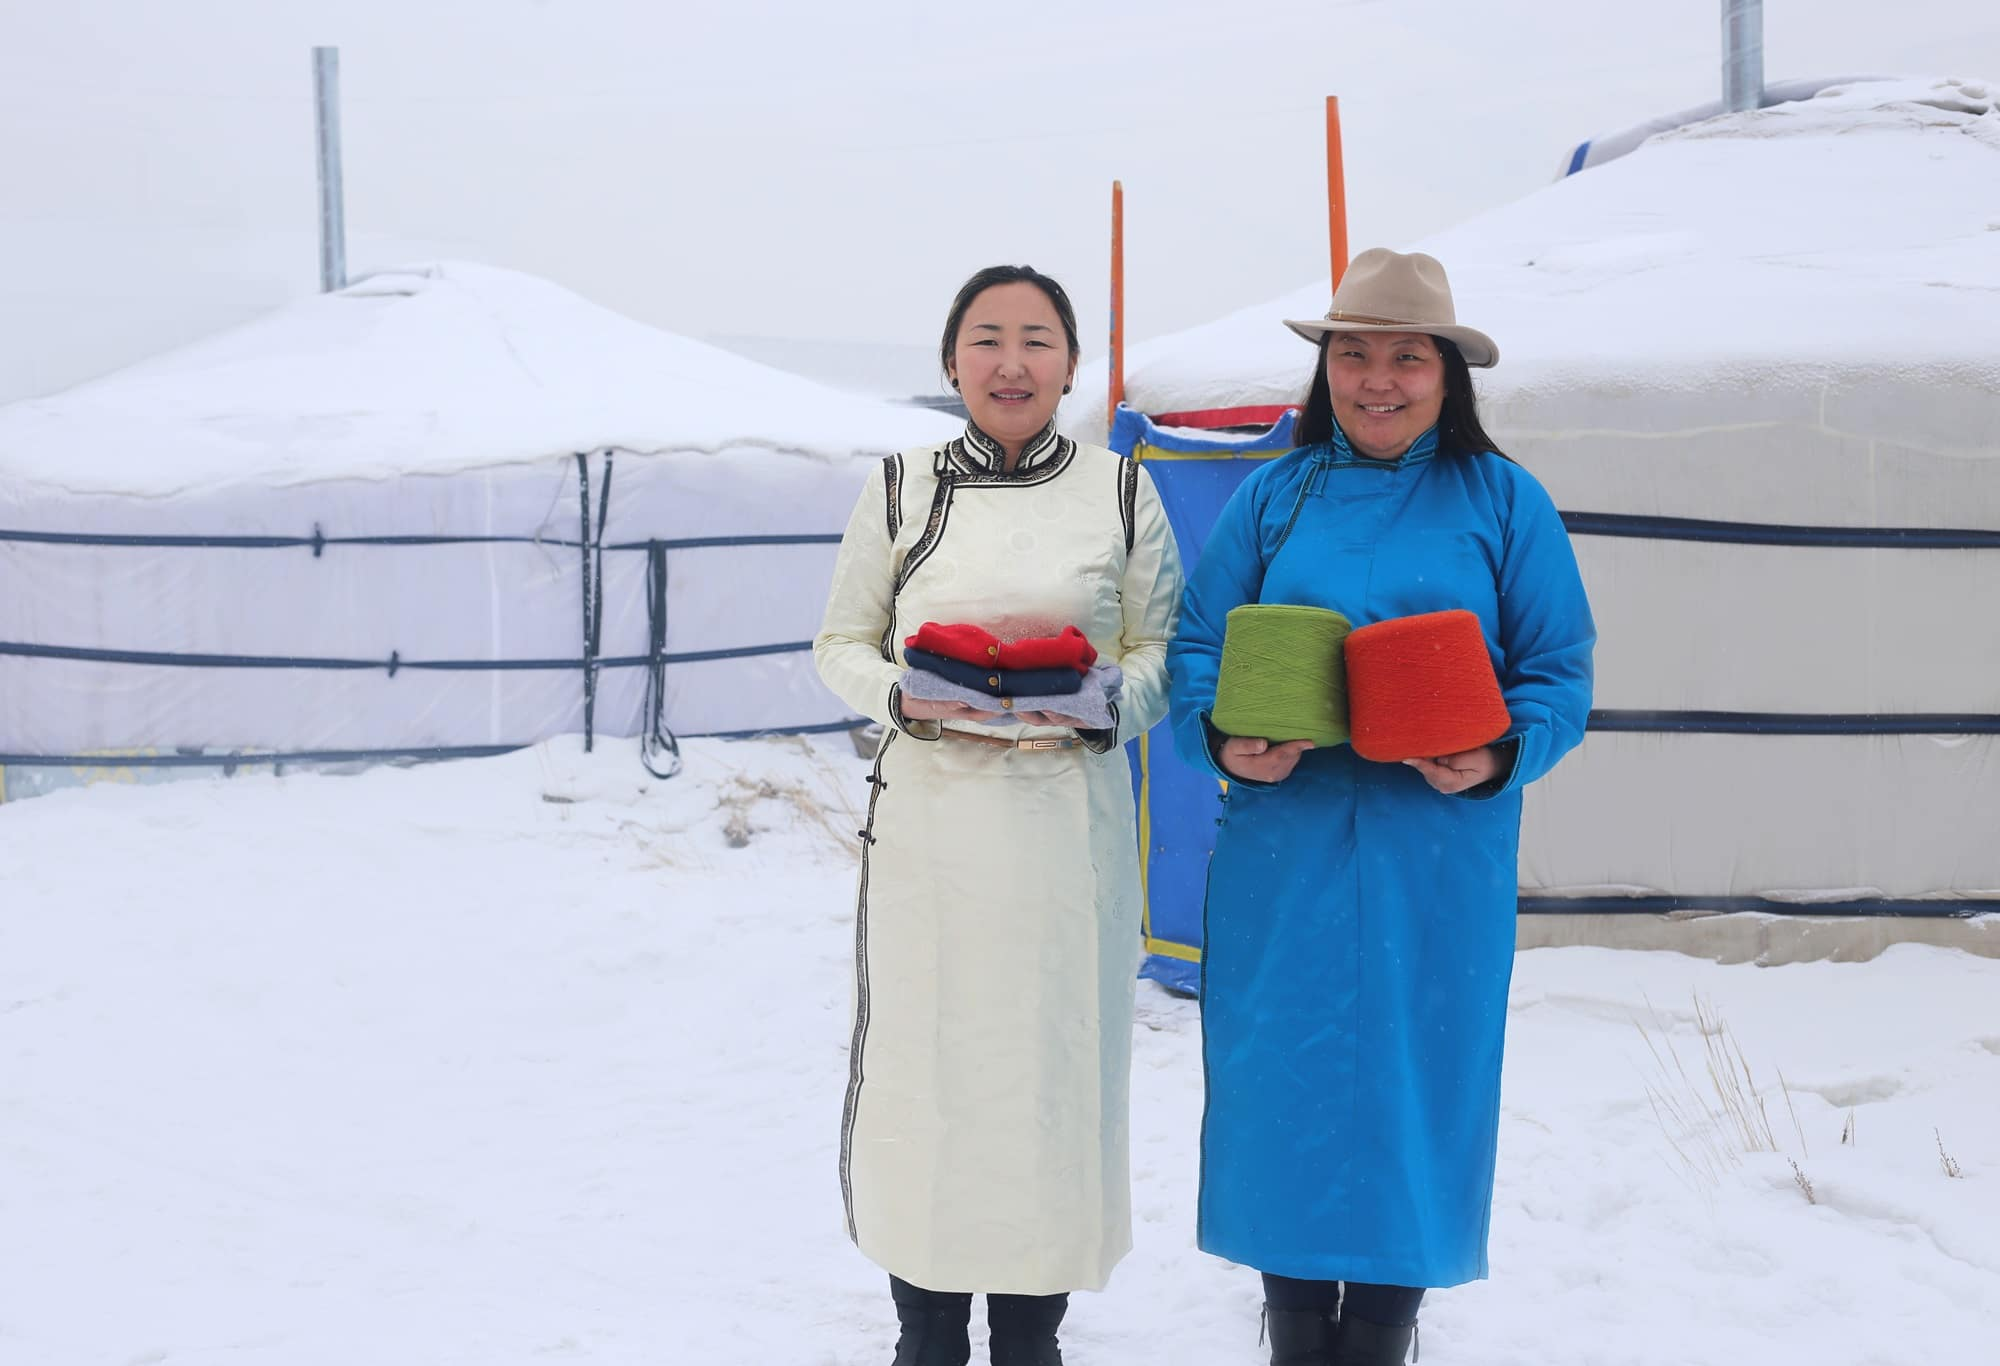 Members of MERRYCOOP in Mongolia who are involved in the cashmere project